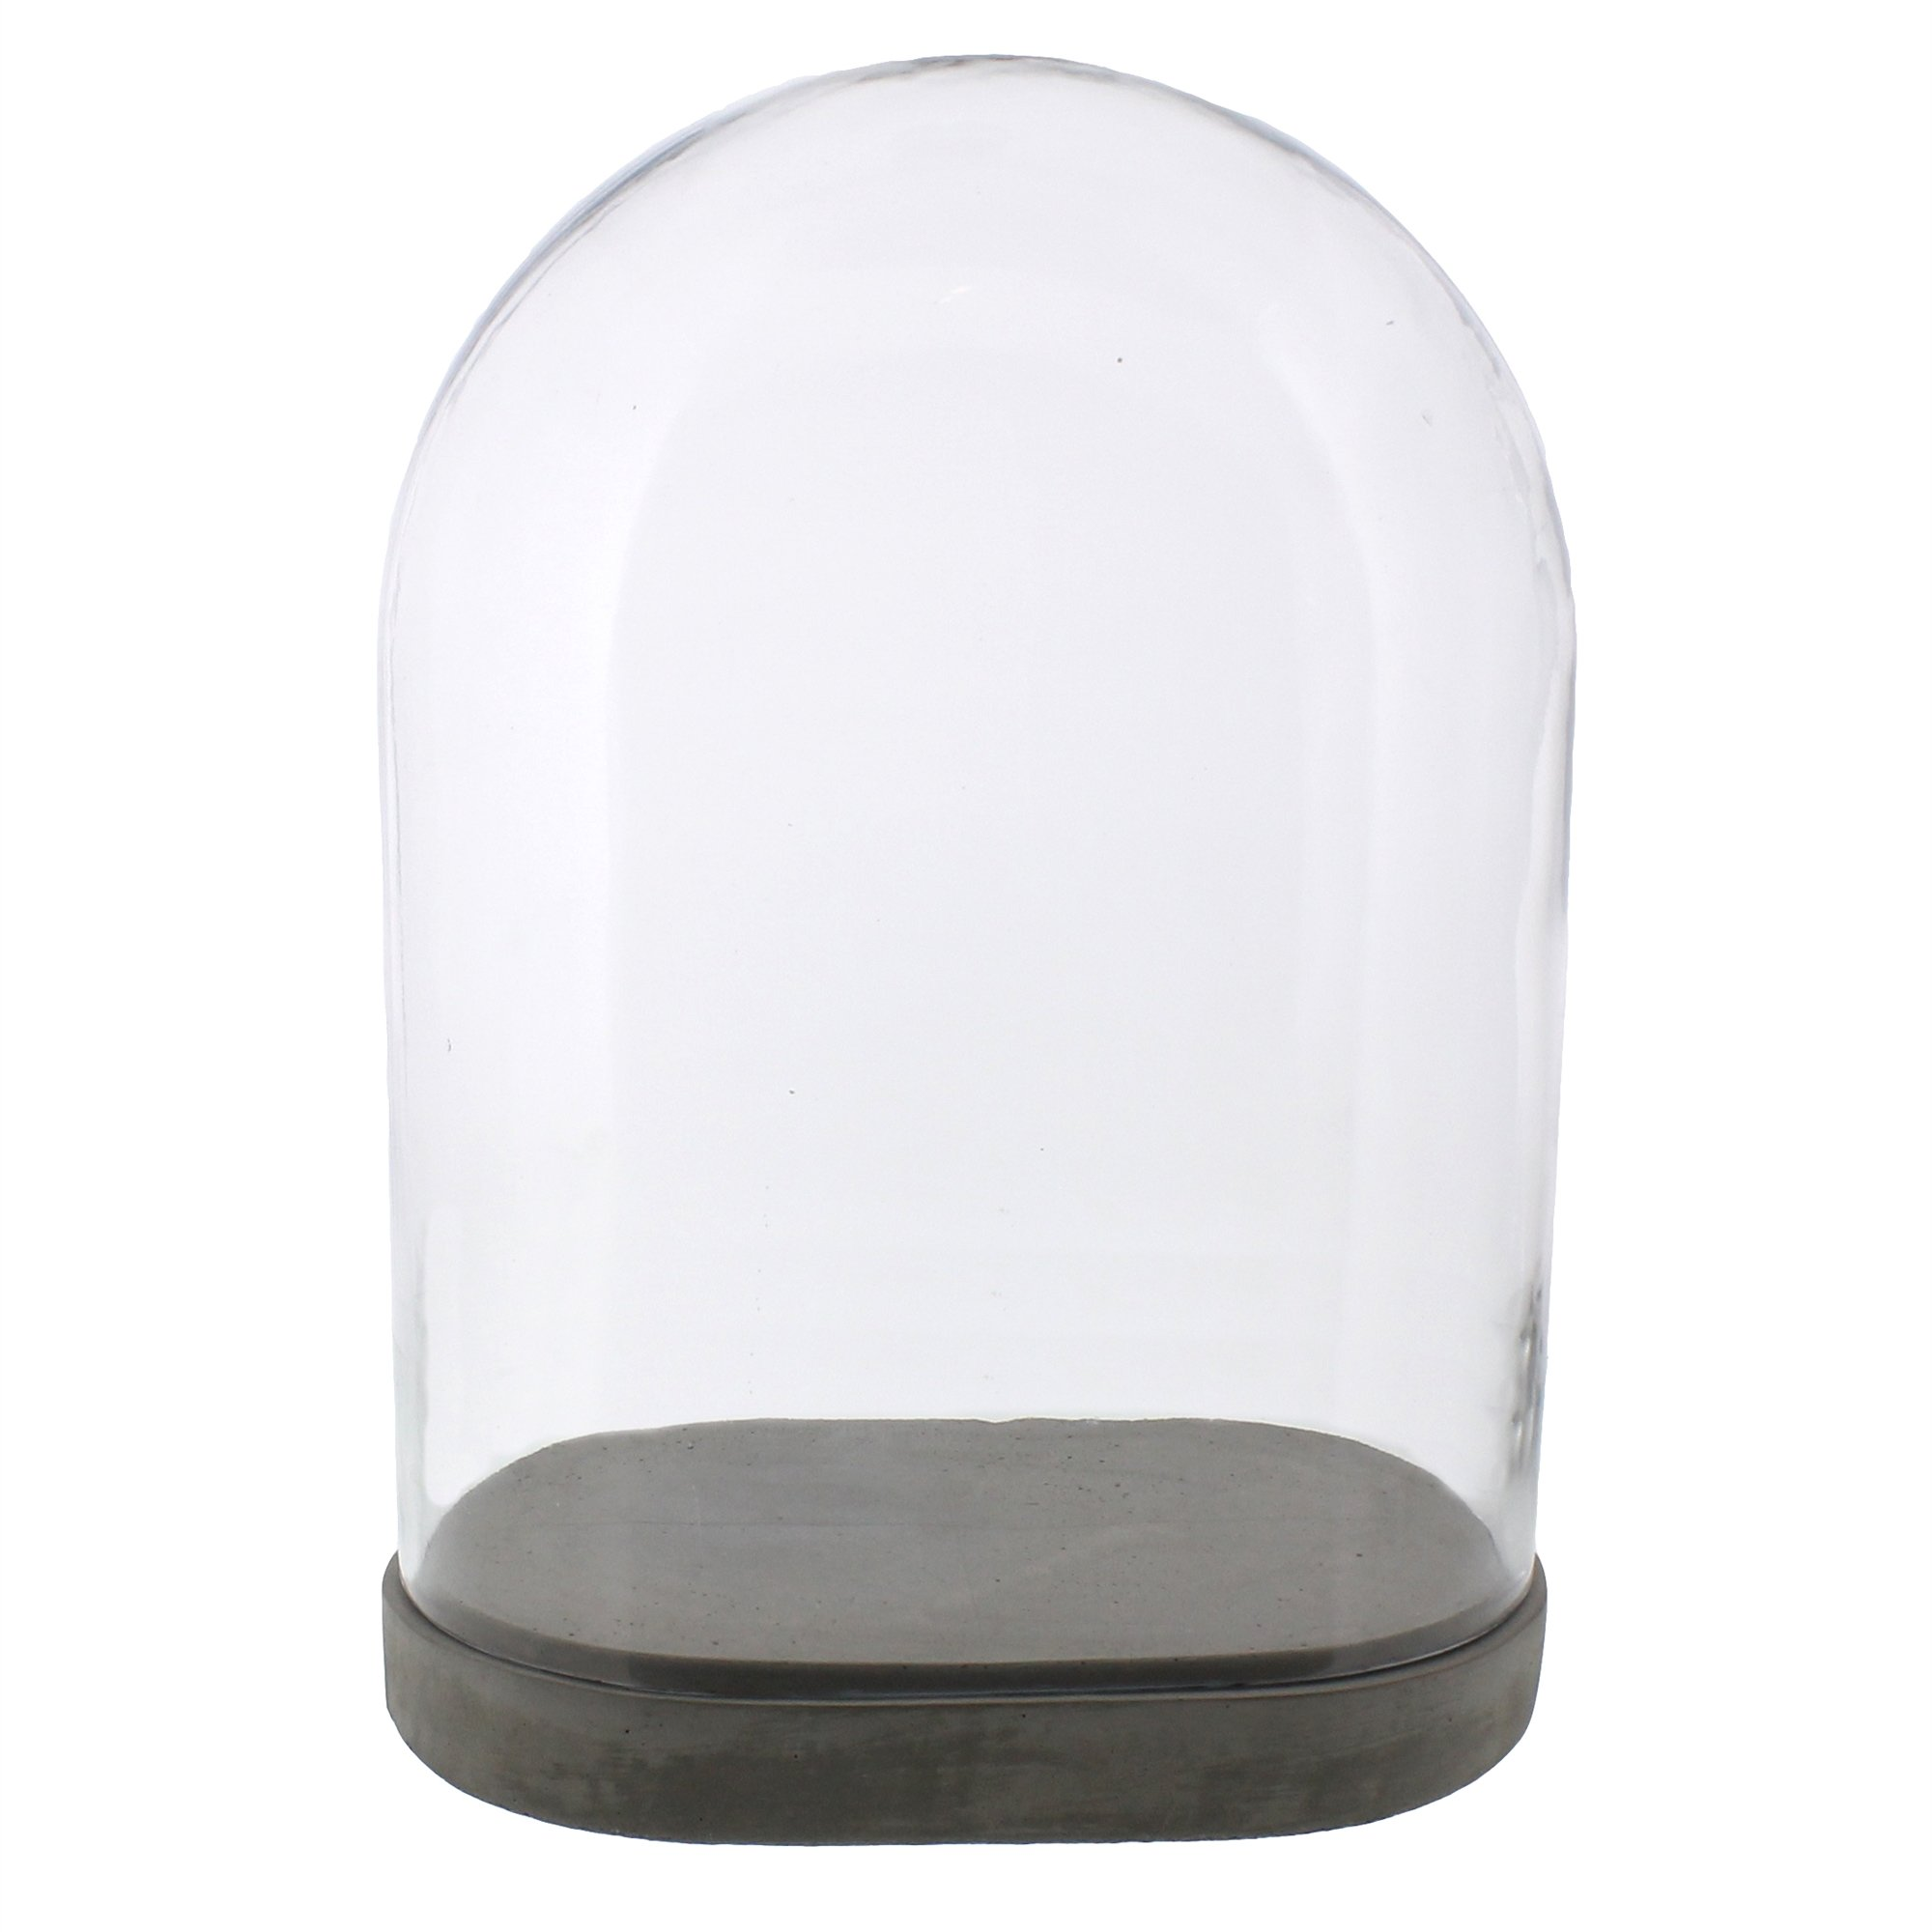 Large Risa Cement Base with Oval Glass Cloche Dome - Clear